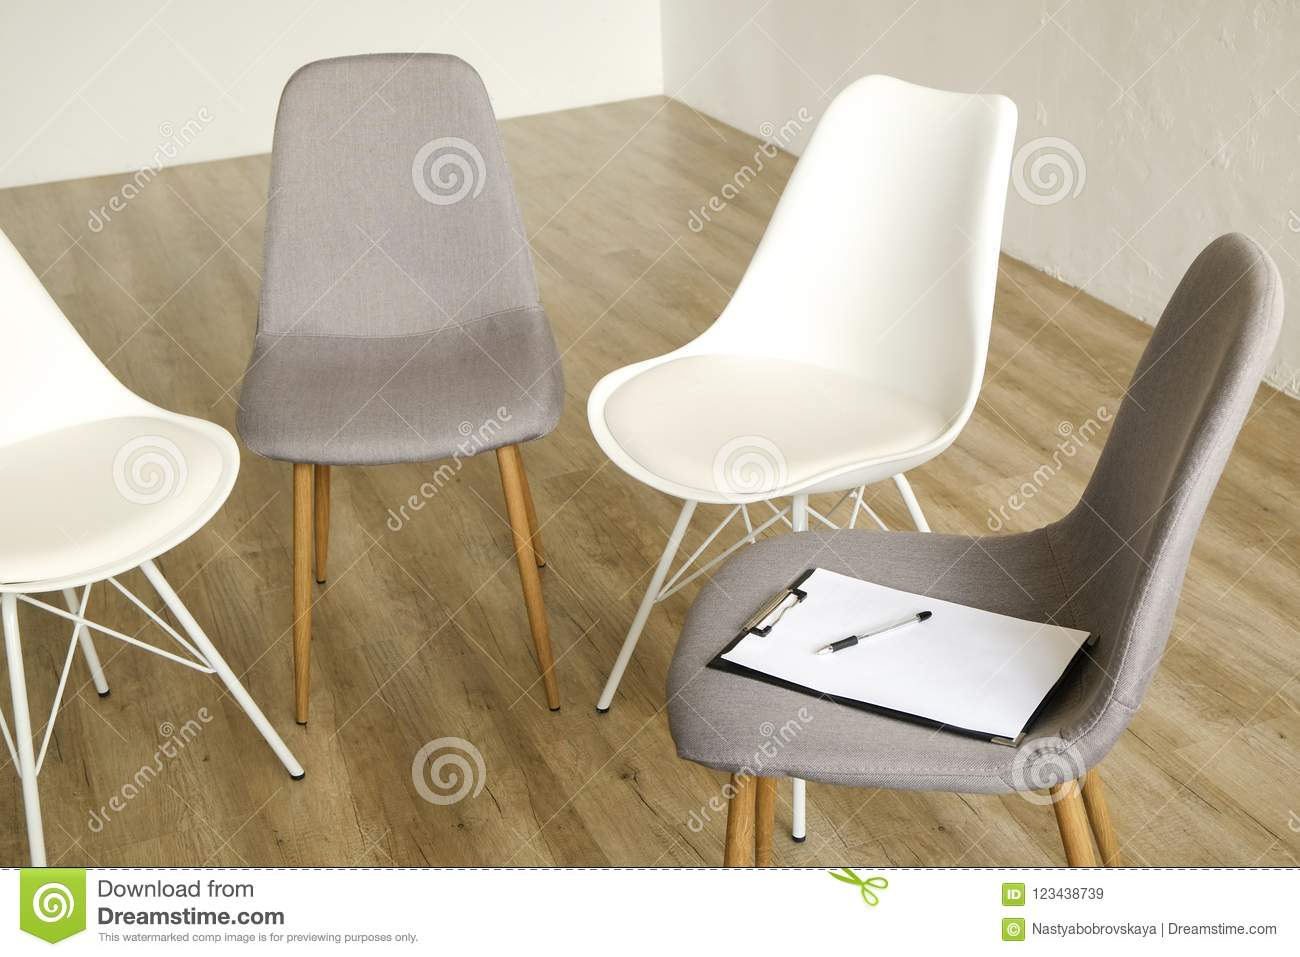 Exceptionnel Multiple Loft Style Empty Chairs Standing In Row On Wooden Floor, Counselor`s  Seat Clipboard U0026 Pen For Notes. Group Therapy Counseling For Addicts ...